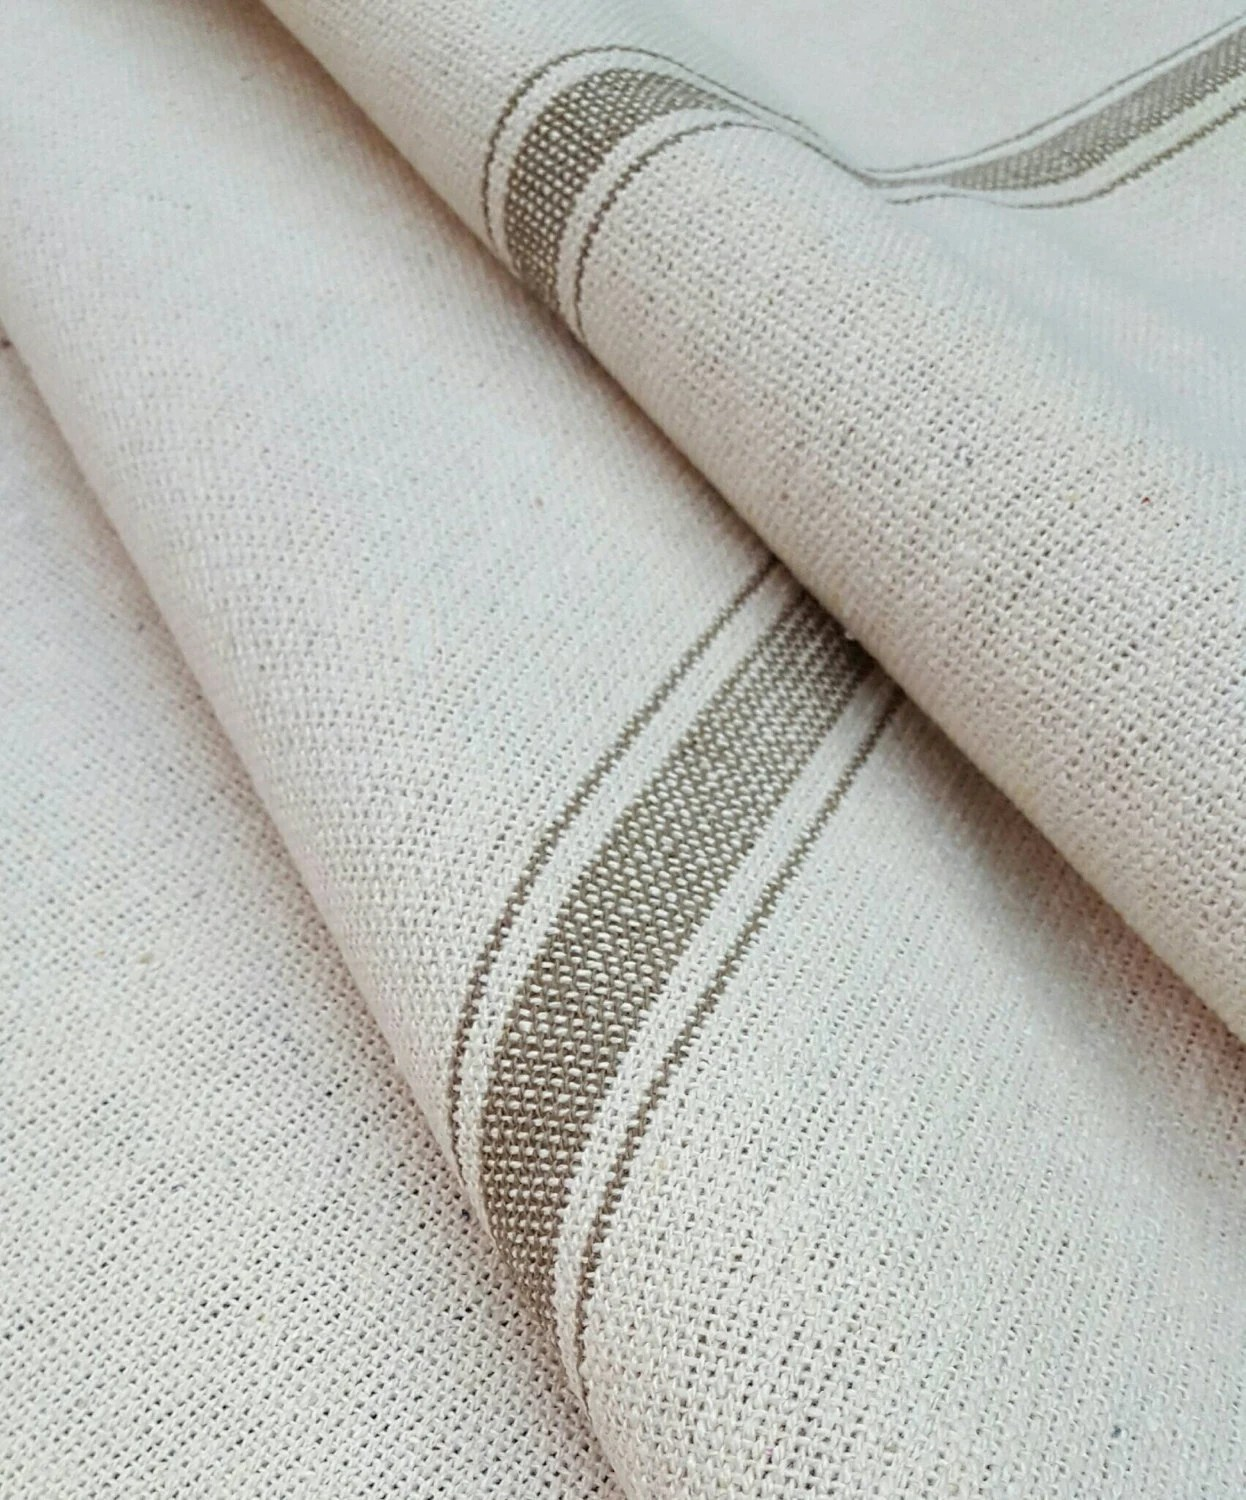 Flour Sack Fabric By The Yard Grain Sack Fabric By The Yard Ticking Fabric Tan 3 Stripe